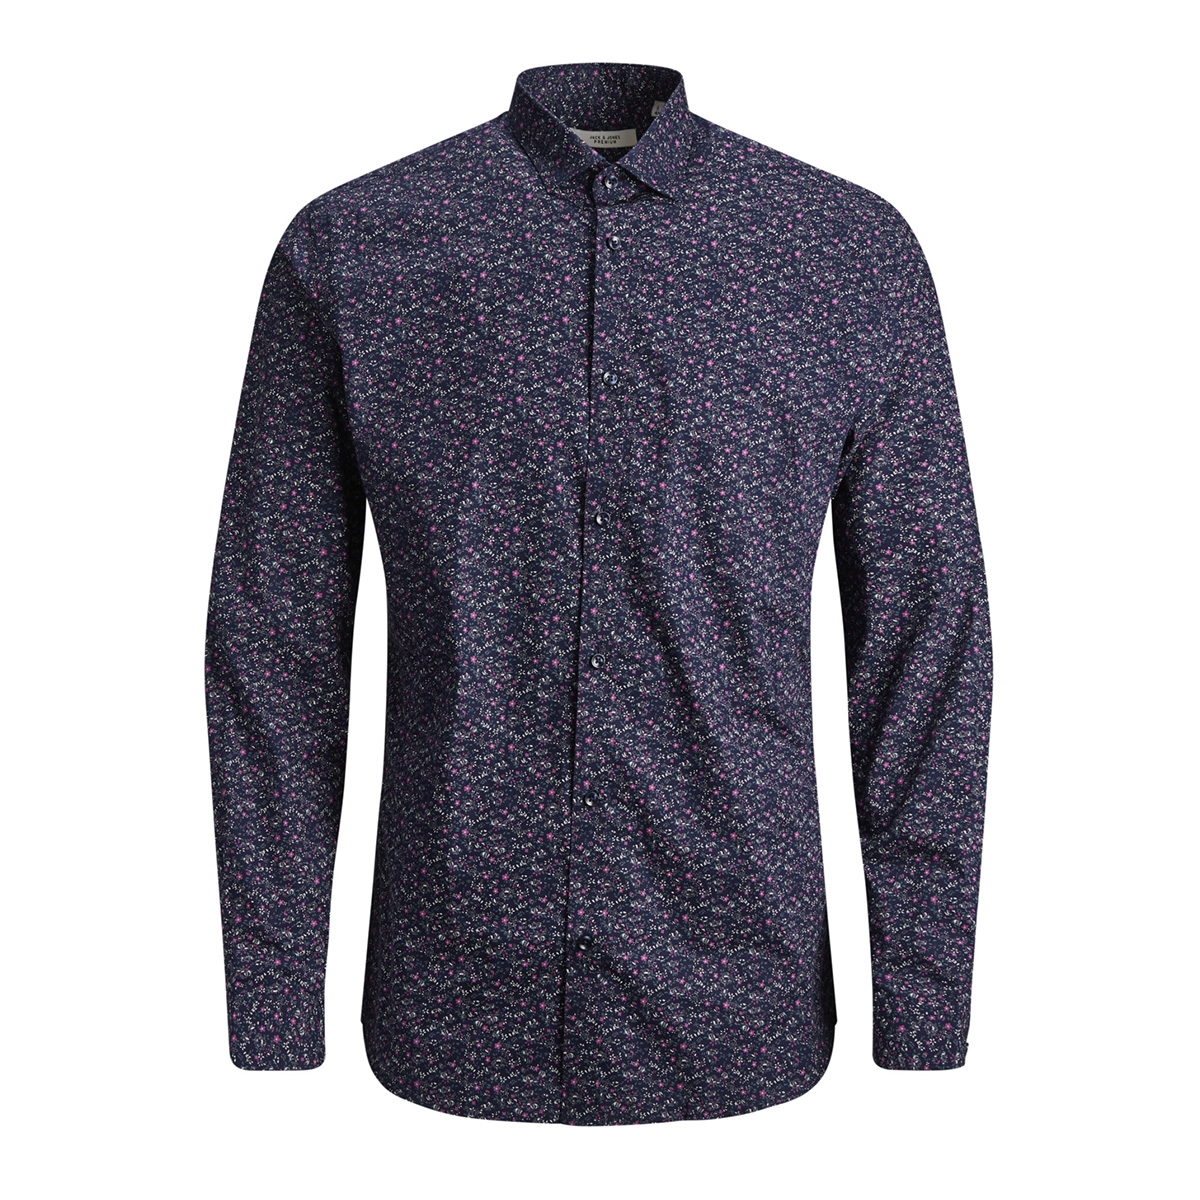 jprblackpool shirt l/s s19 sts 12145540 jack & jones overhemd navy blazer/slim fit